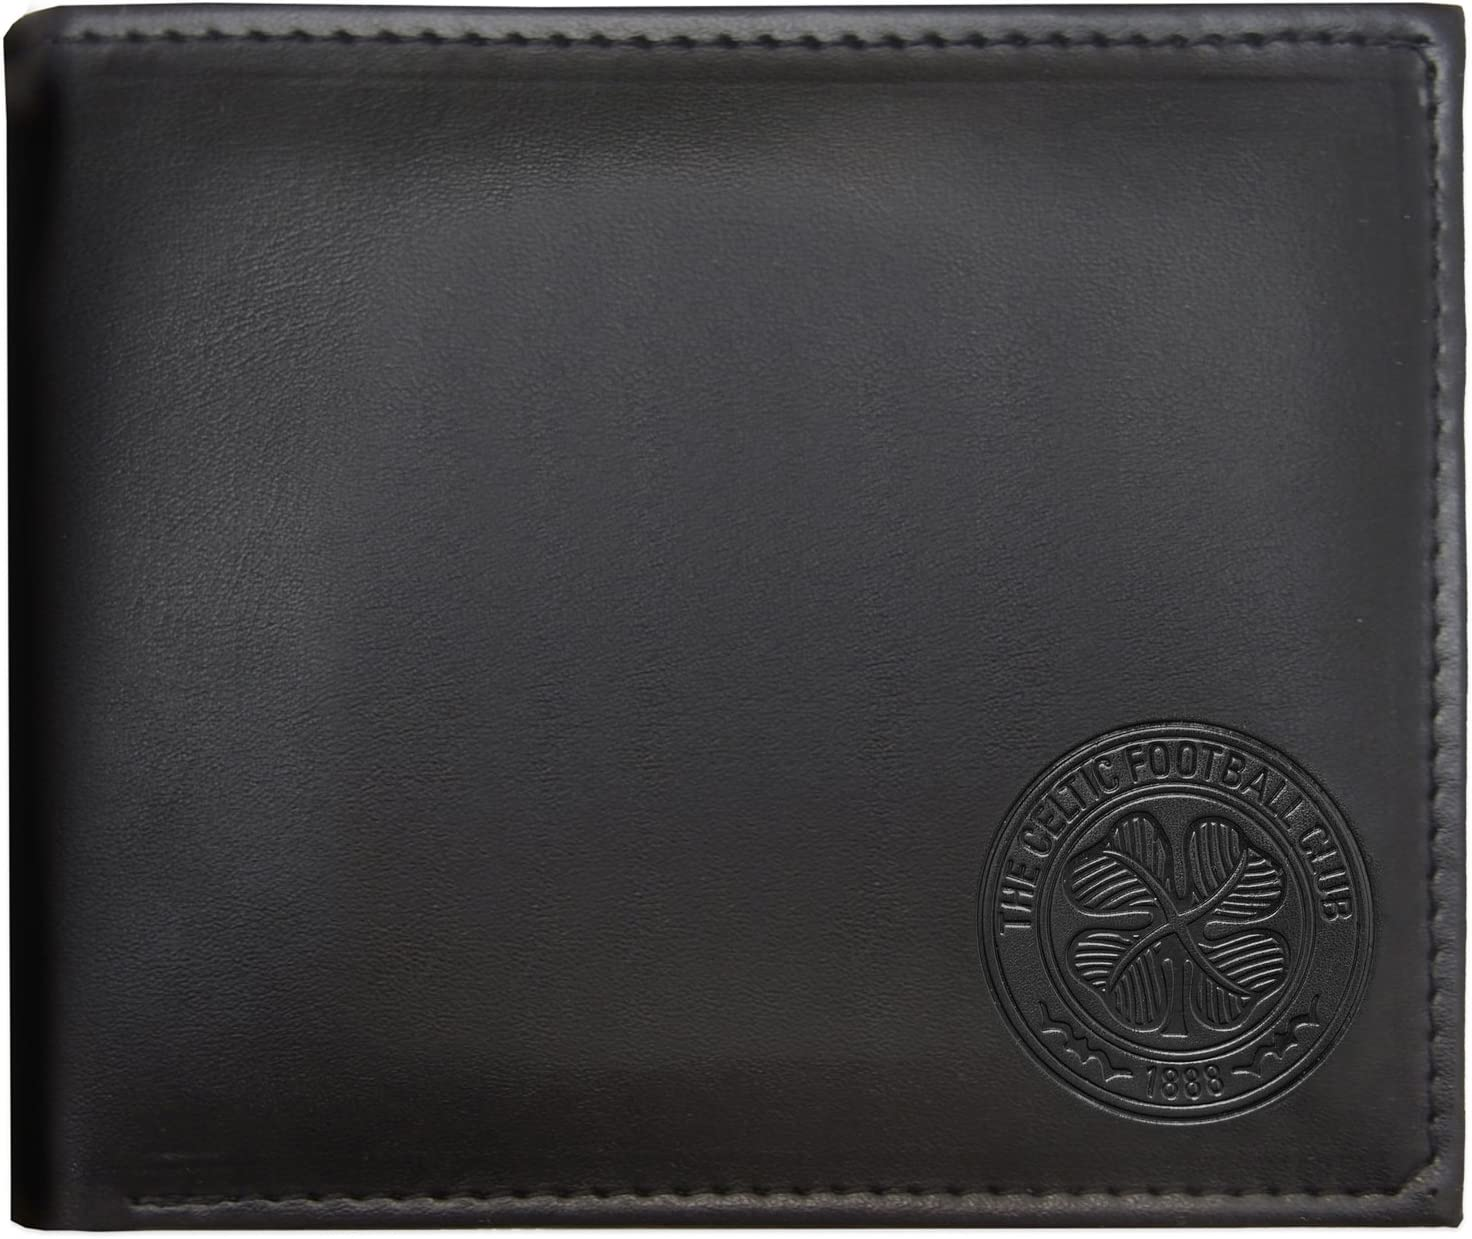 Celtic FC Embroidered Wallet Black//Green One Size